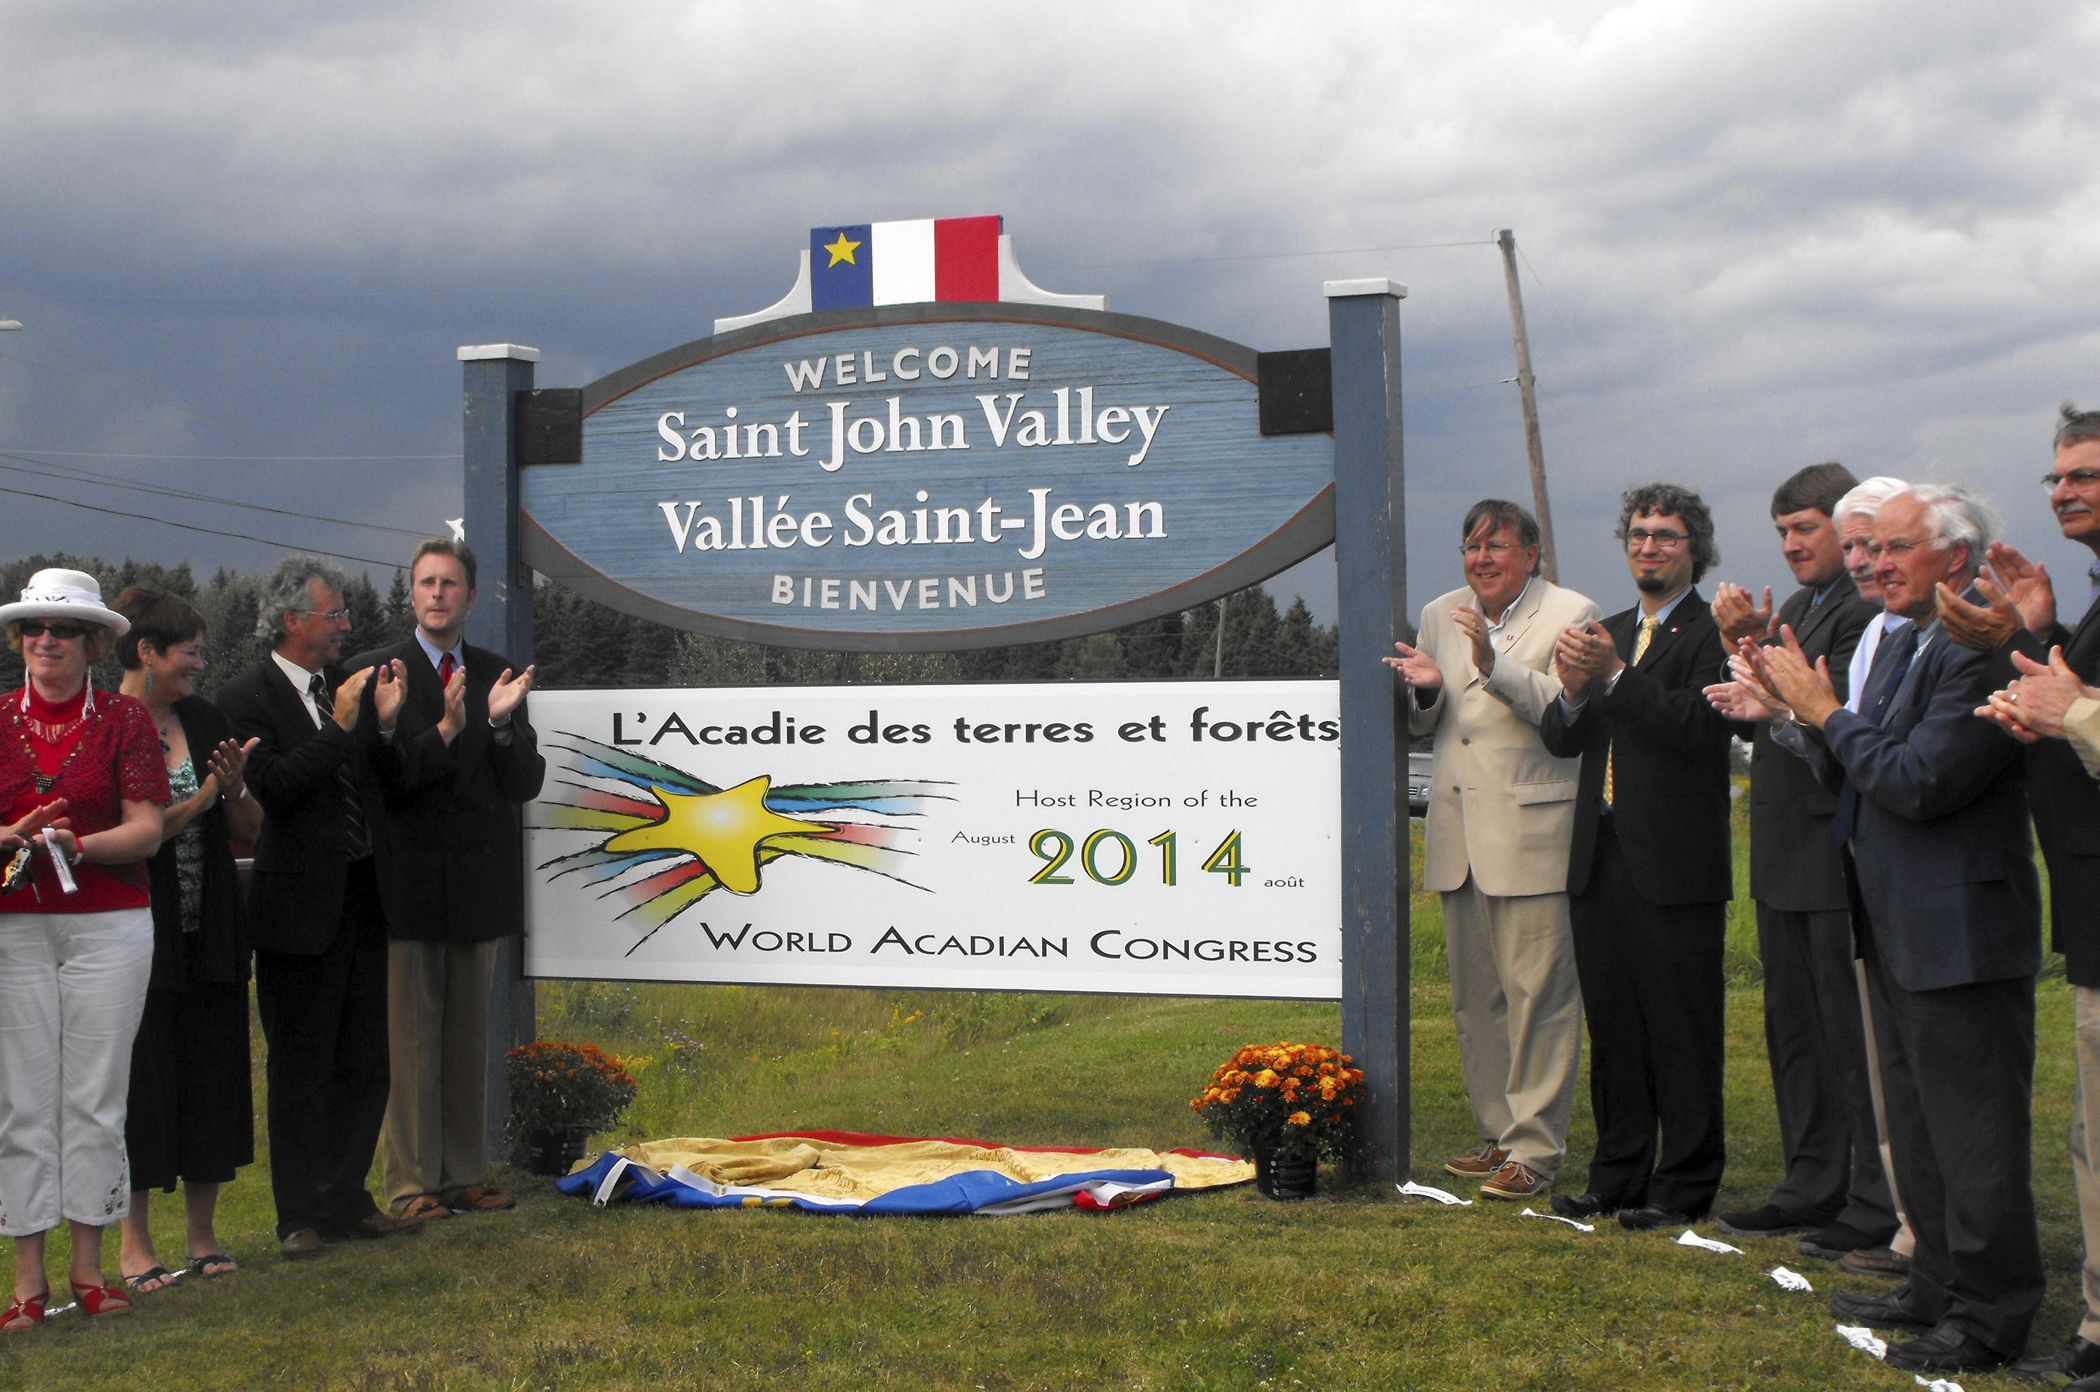 Organizers of the 2014 World Acadian Congress from both Maine and Canada gathered with Maine legislators and others in August in Cyr Plantation for the unveiling of one of four bilingual signs that will be erected in the St. John Valley to welcome people to the host region of the massive celebration.